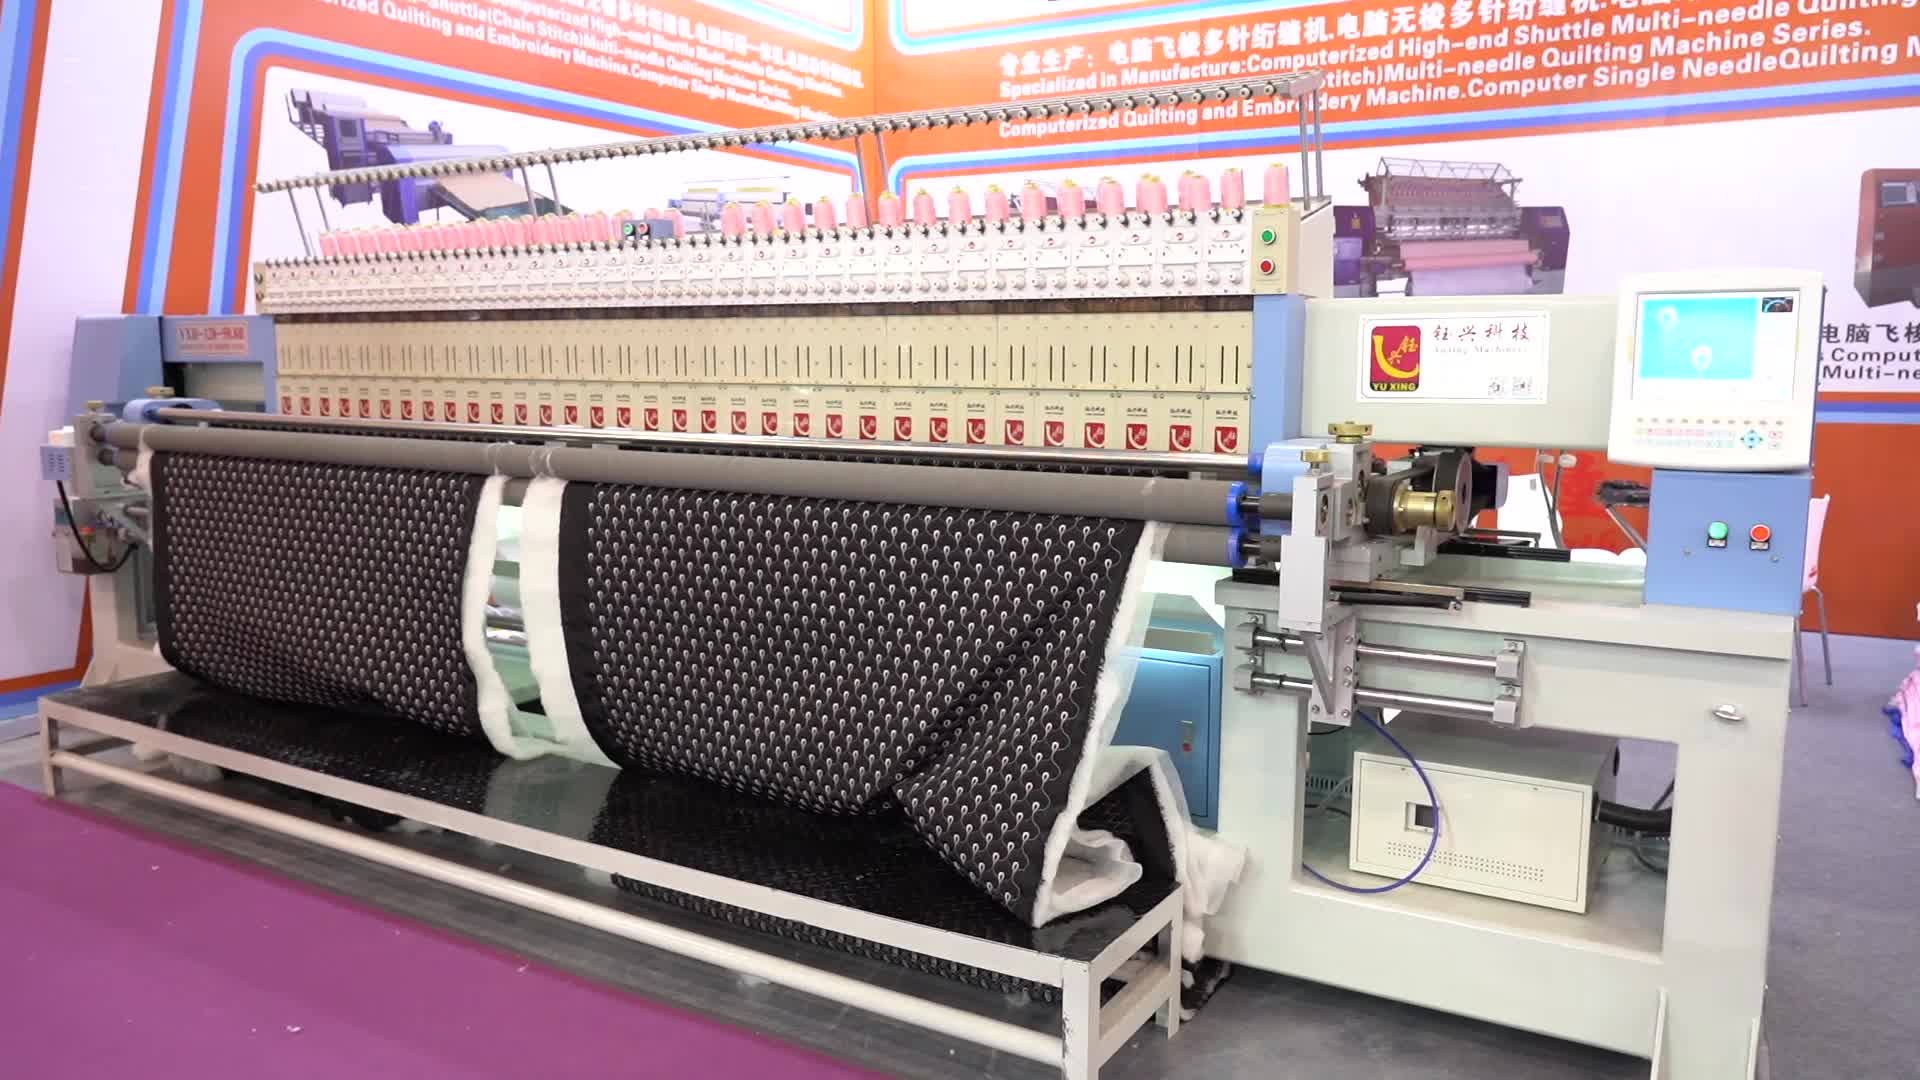 Computerized Multi-head Quilting Embroidery Machine for blanket